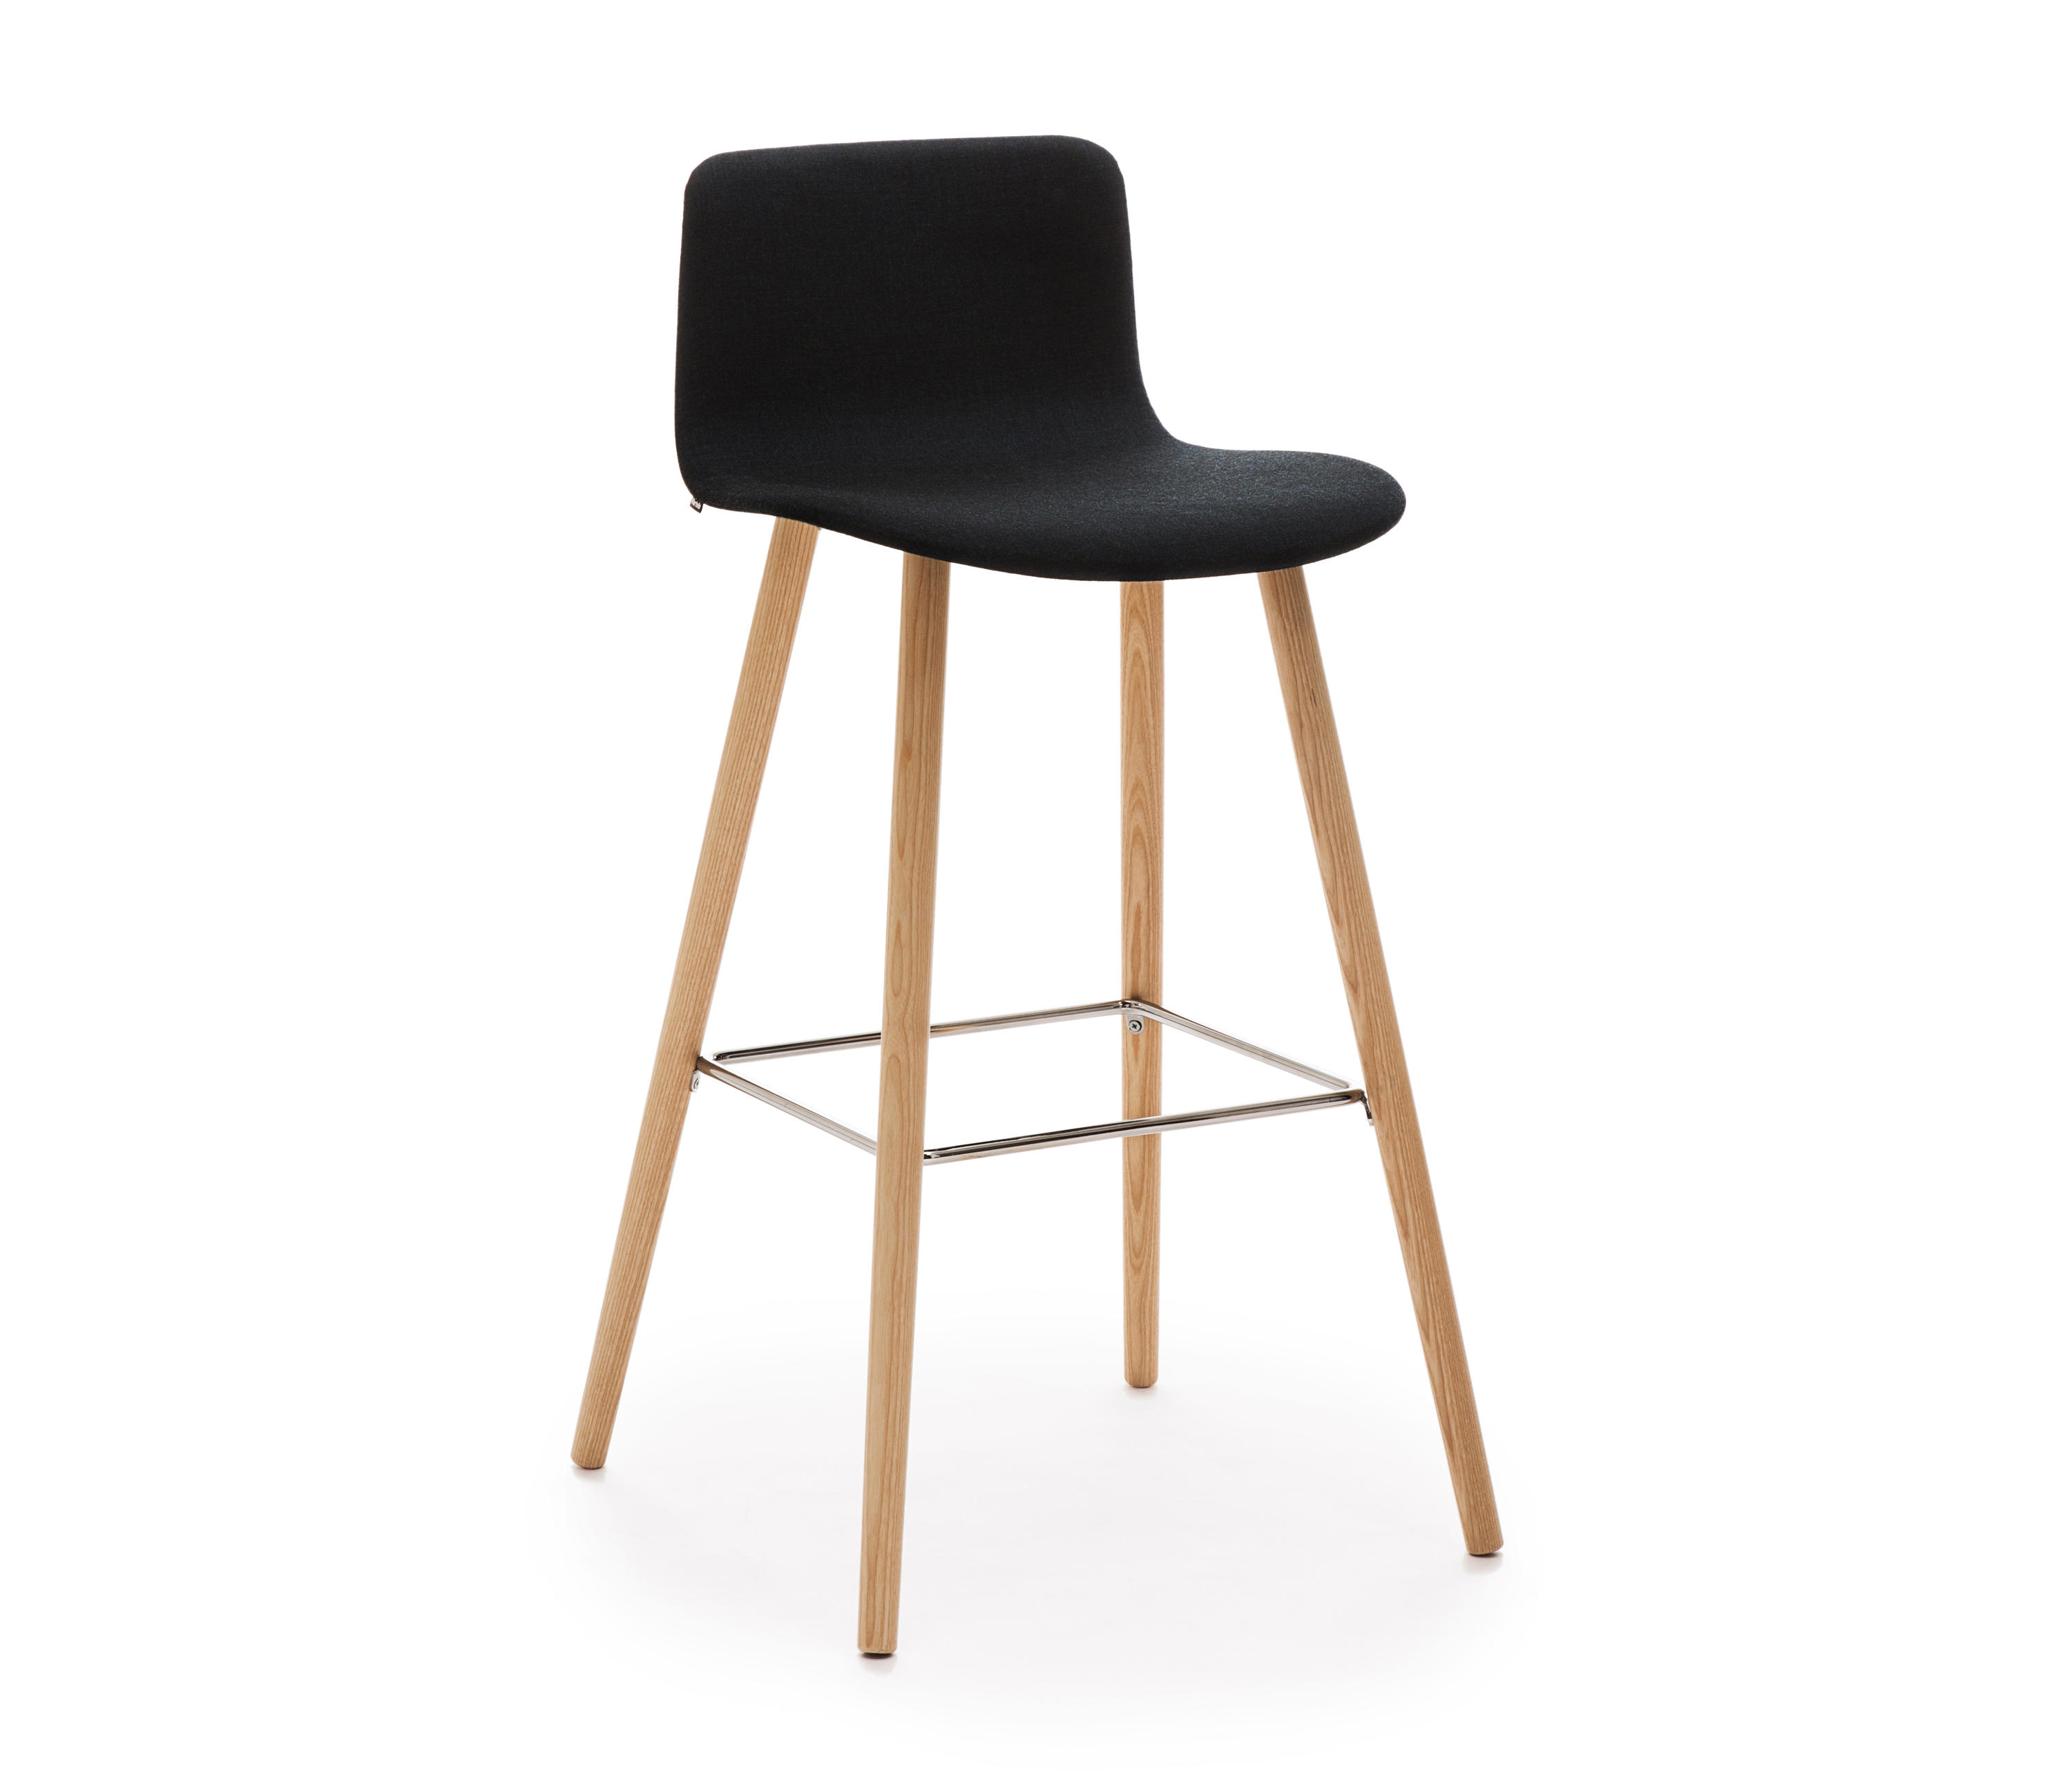 Sola Barstool Wooden Base Upholstered Low Backrest Bar